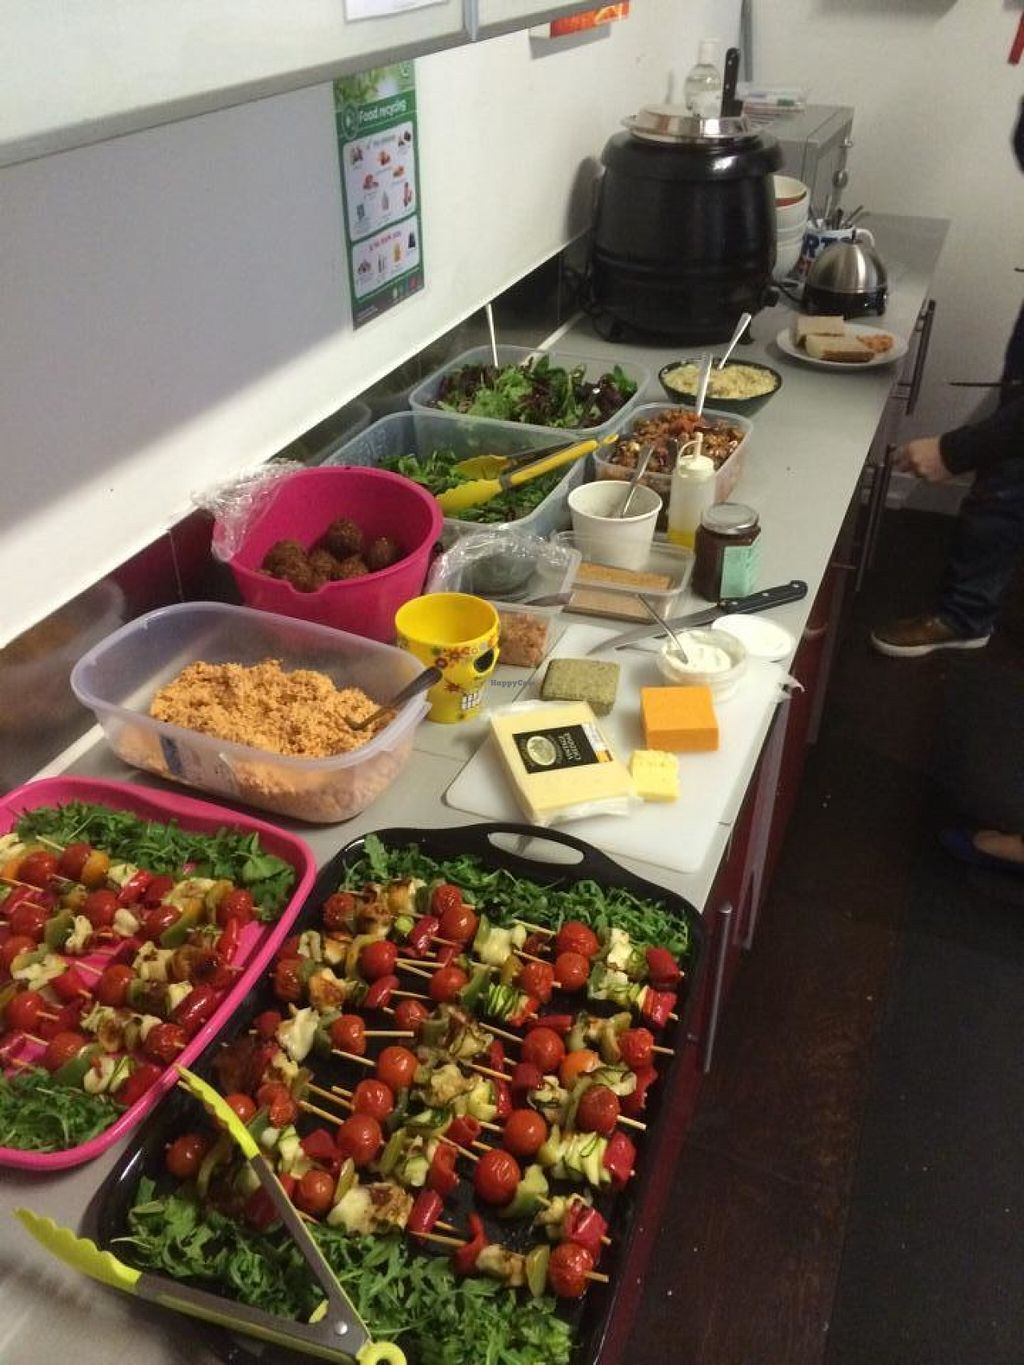 """Photo of Daily Veg  by <a href=""""/members/profile/GarethMoore"""">GarethMoore</a> <br/>Workplace Catering <br/> July 27, 2016  - <a href='/contact/abuse/image/77230/162711'>Report</a>"""